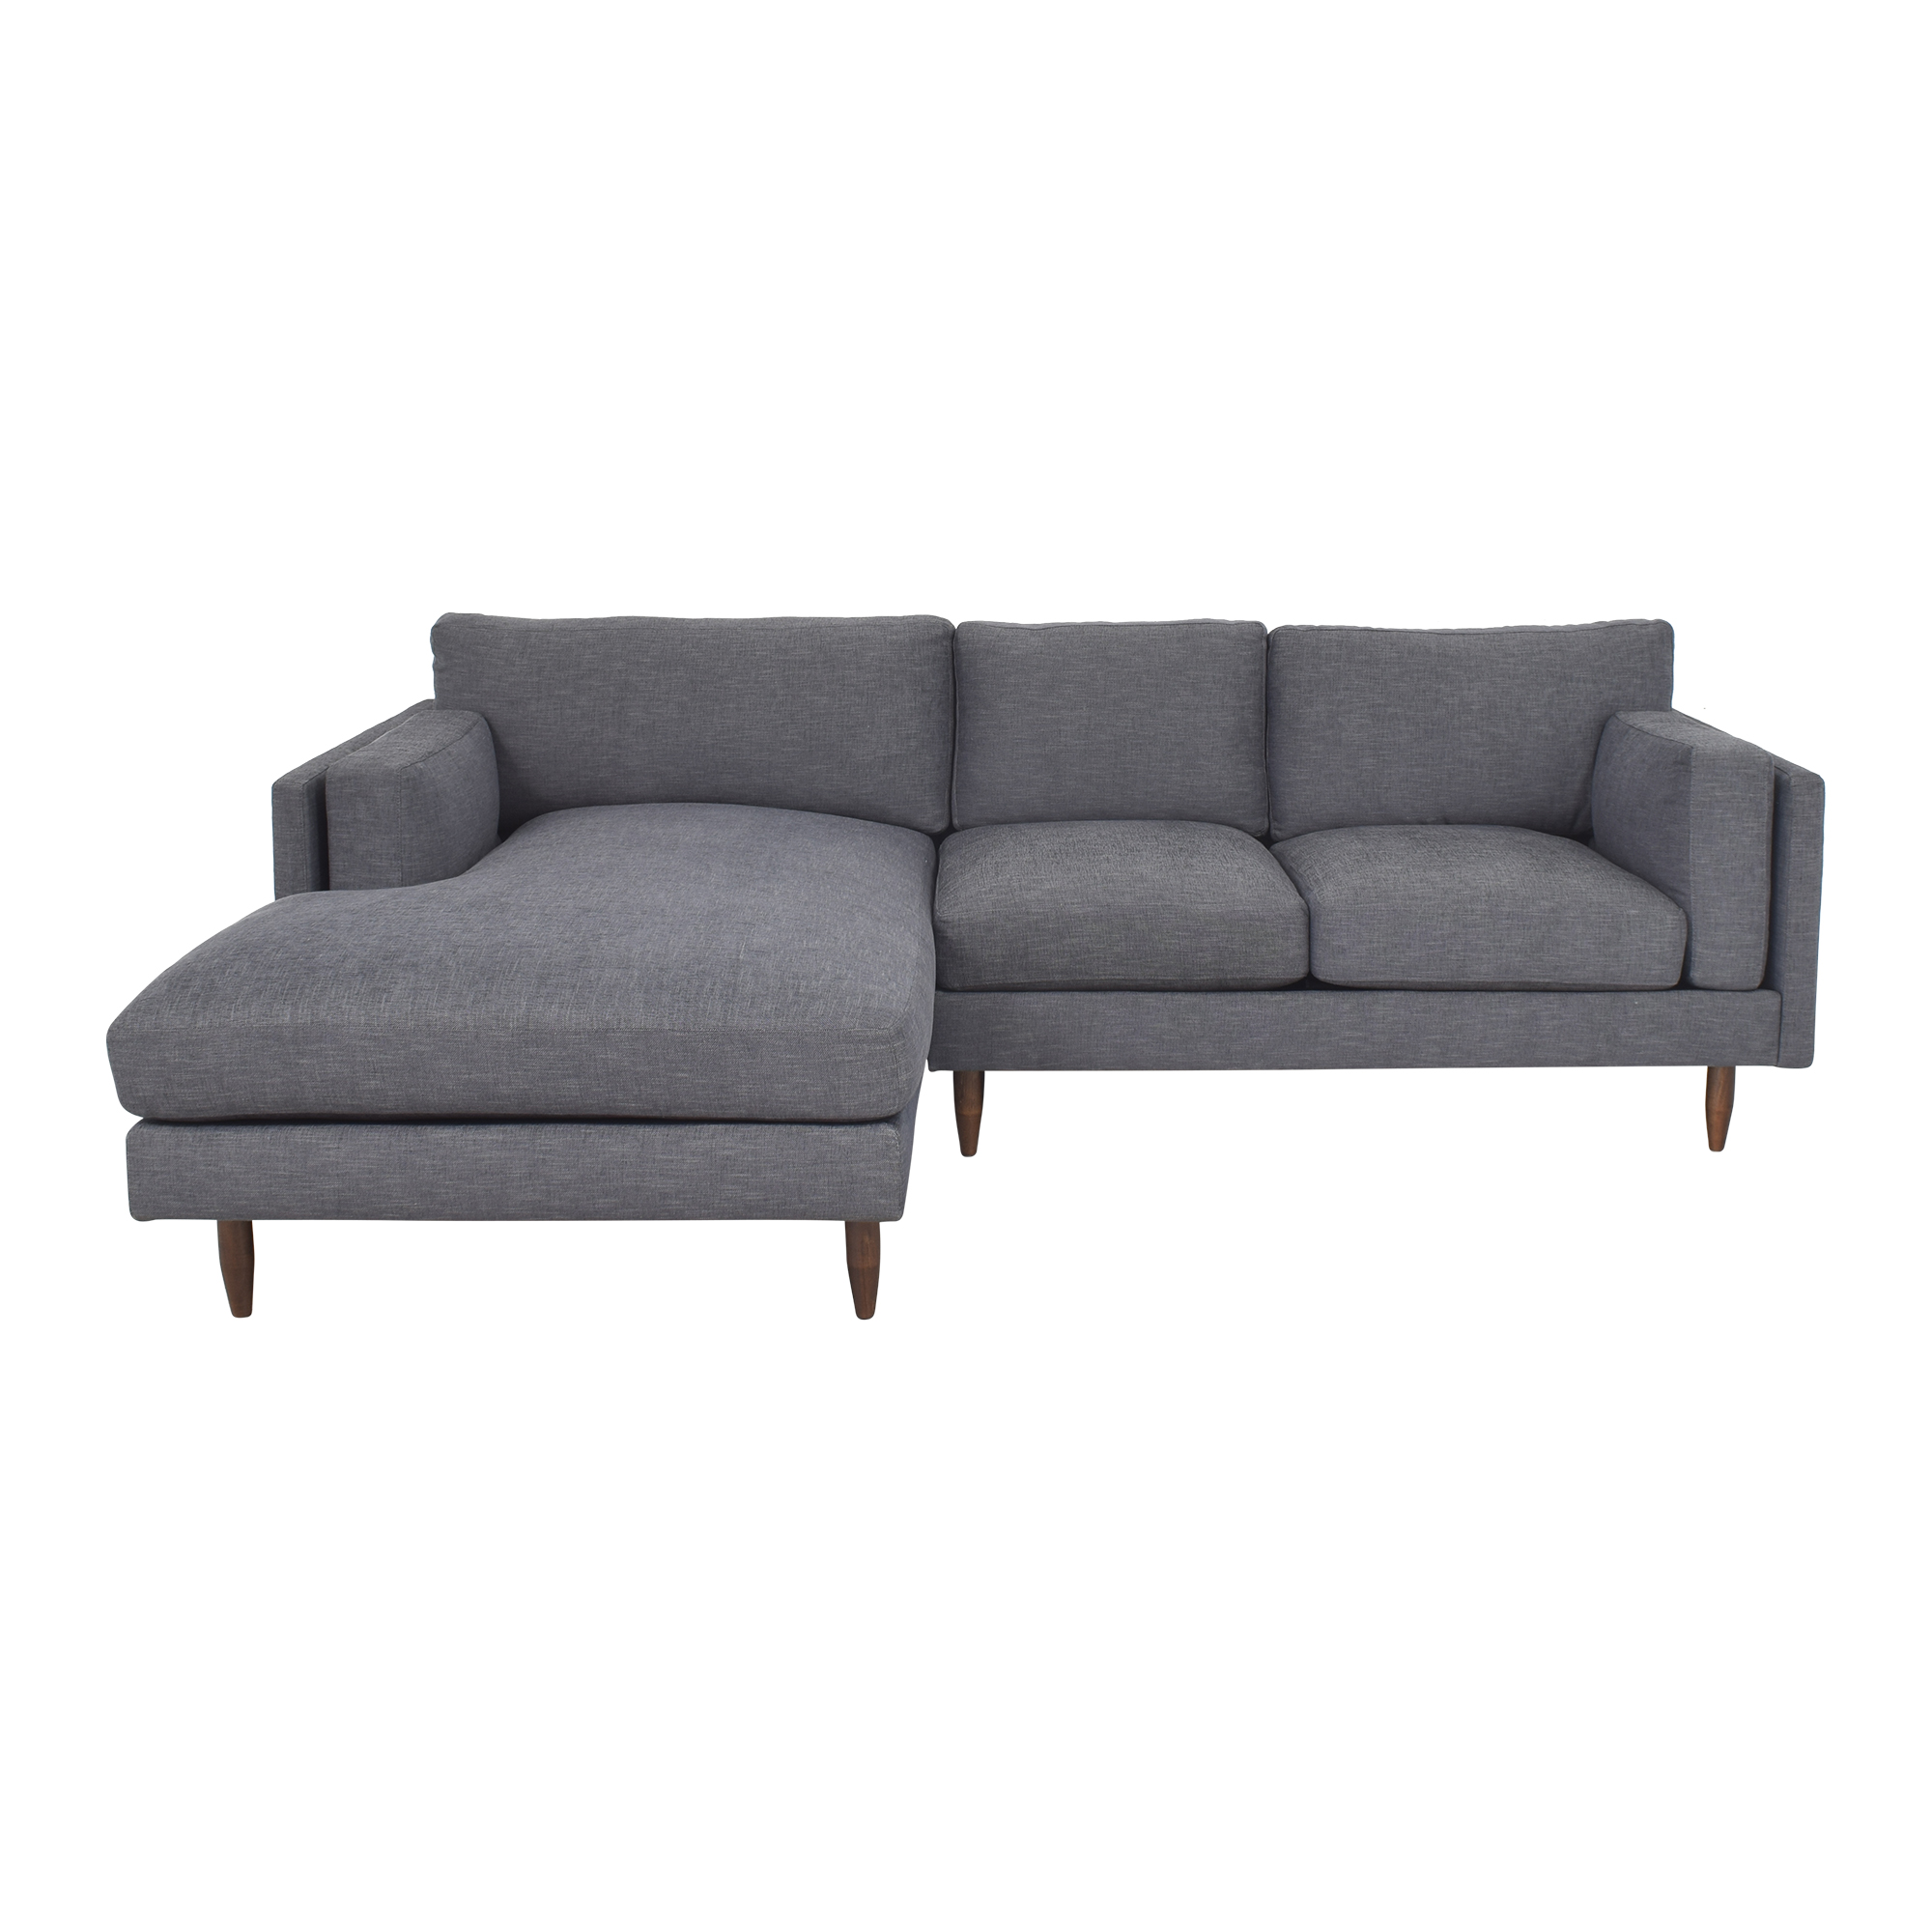 BenchMade Modern BenchMade Modern Skinny Fat Sofa With Chaise ct